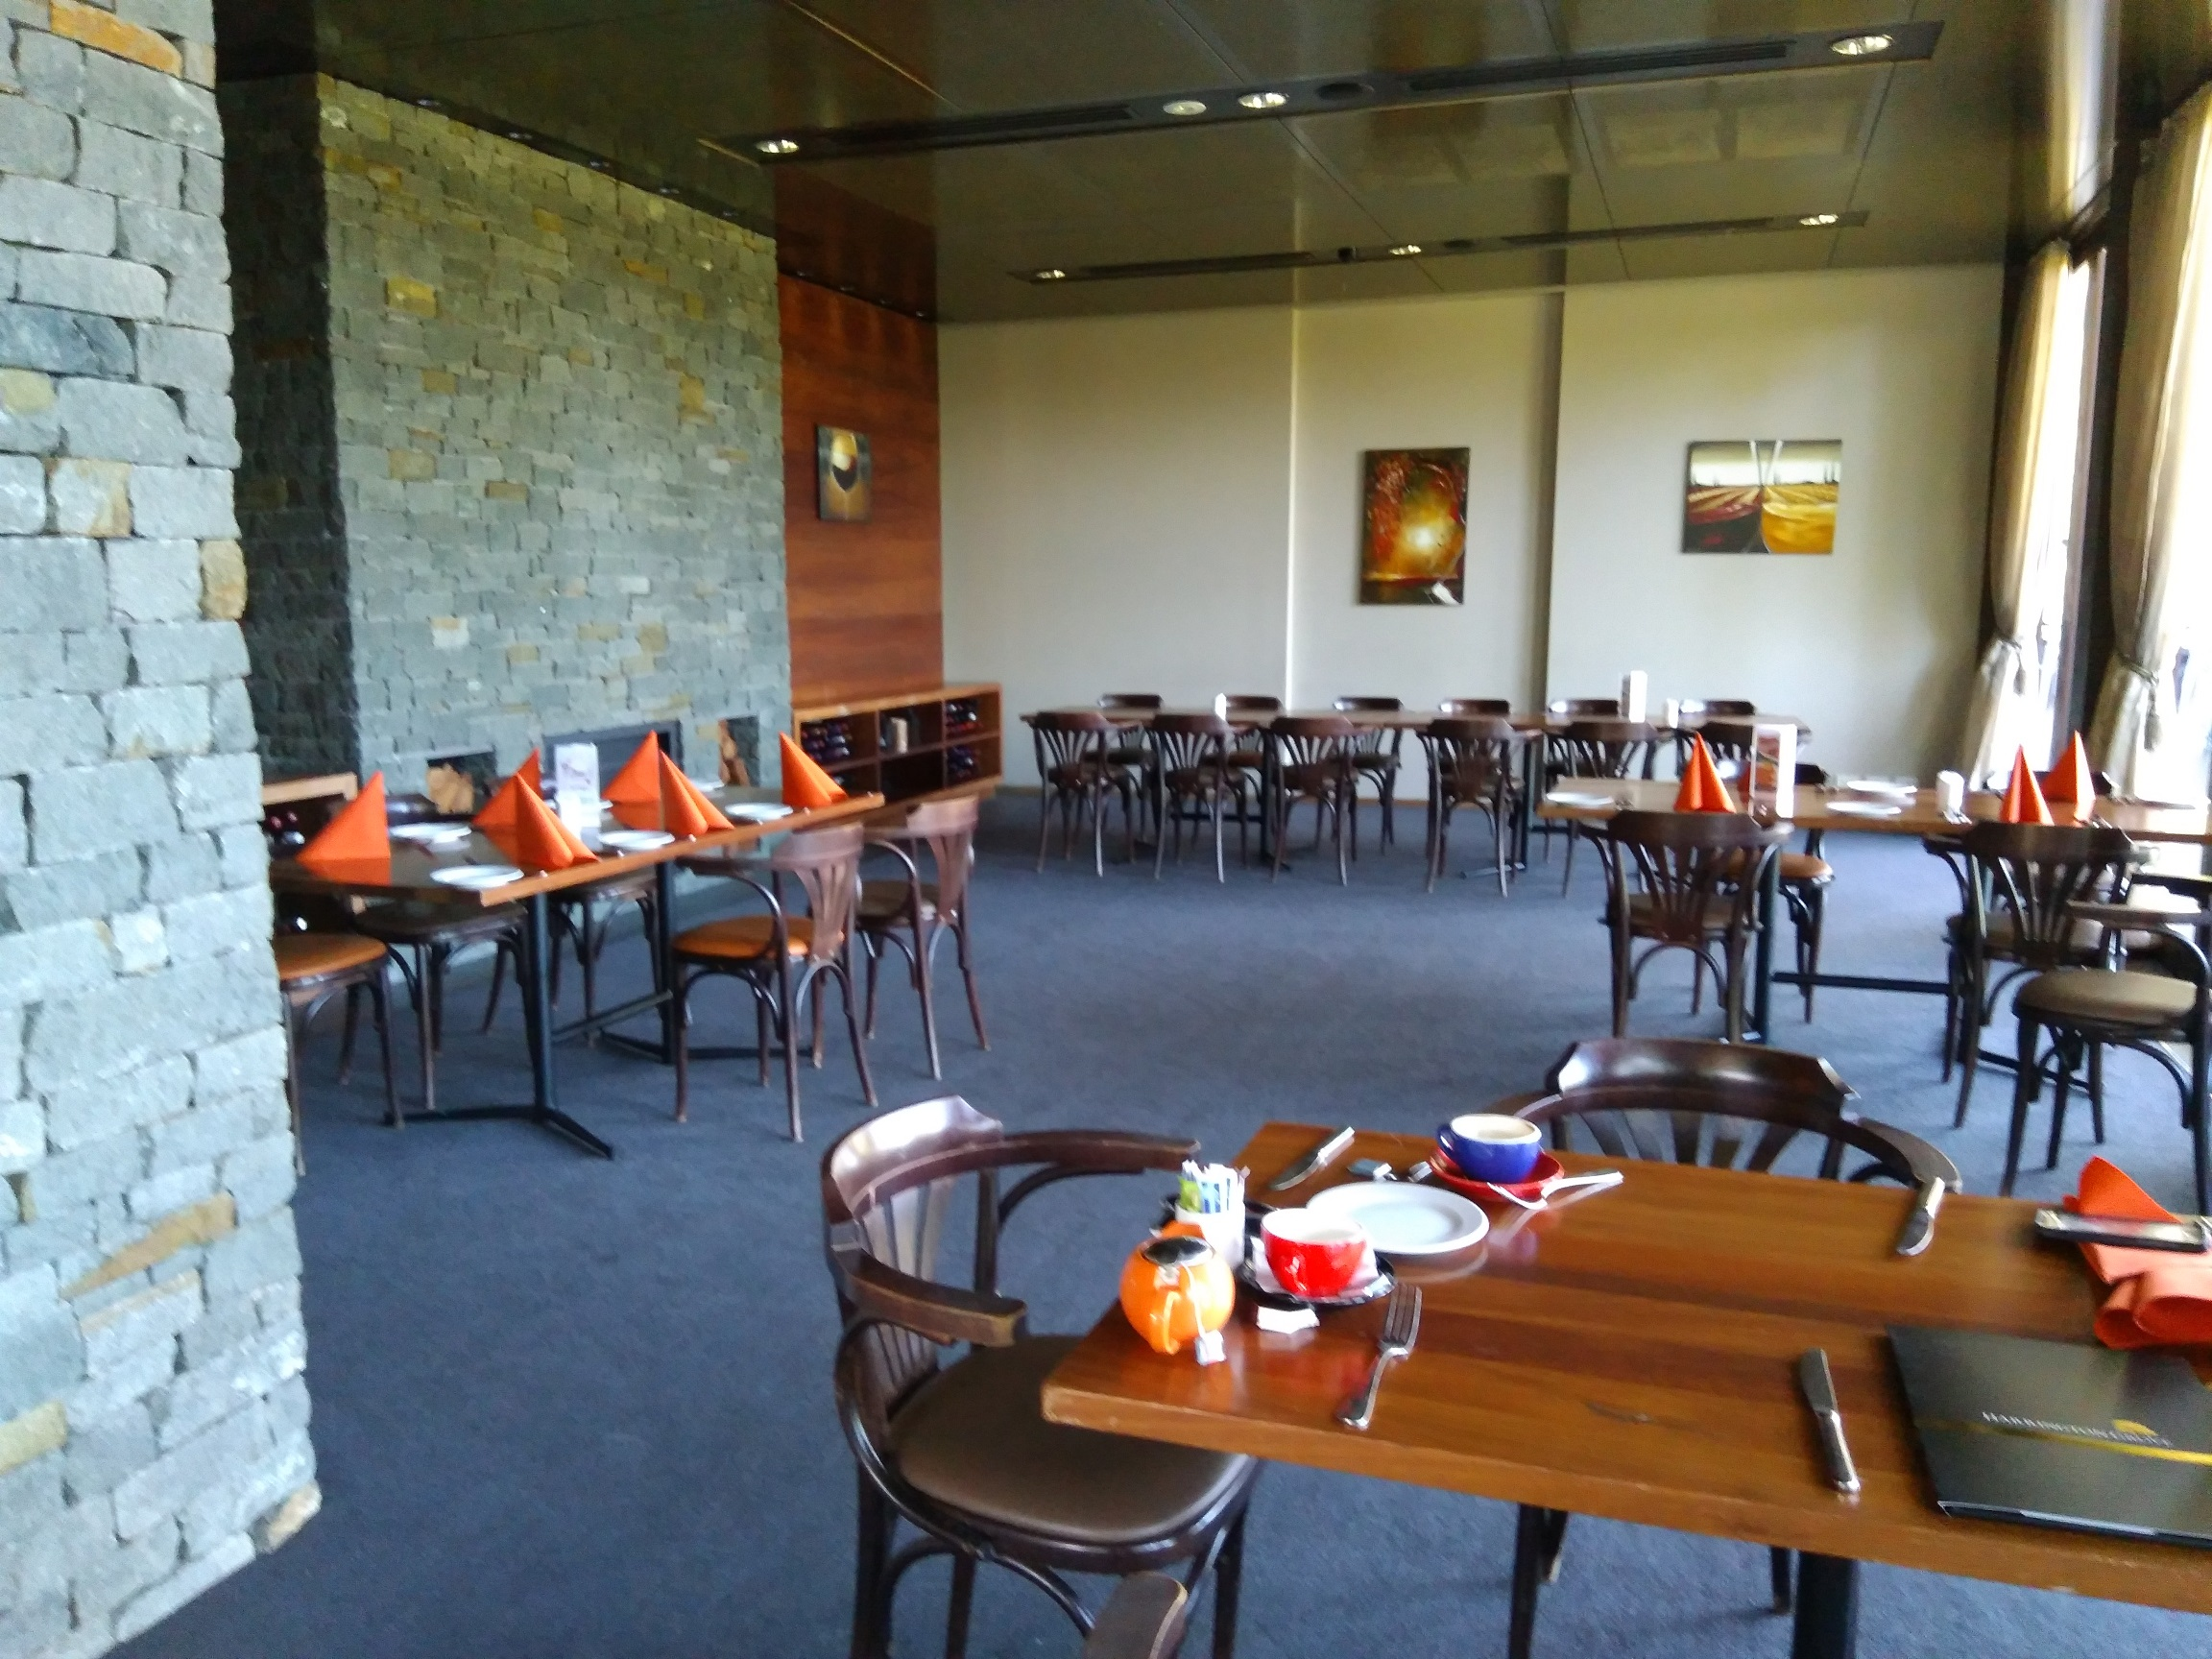 Function Centre and Fine Dinning Restaurant for Sale